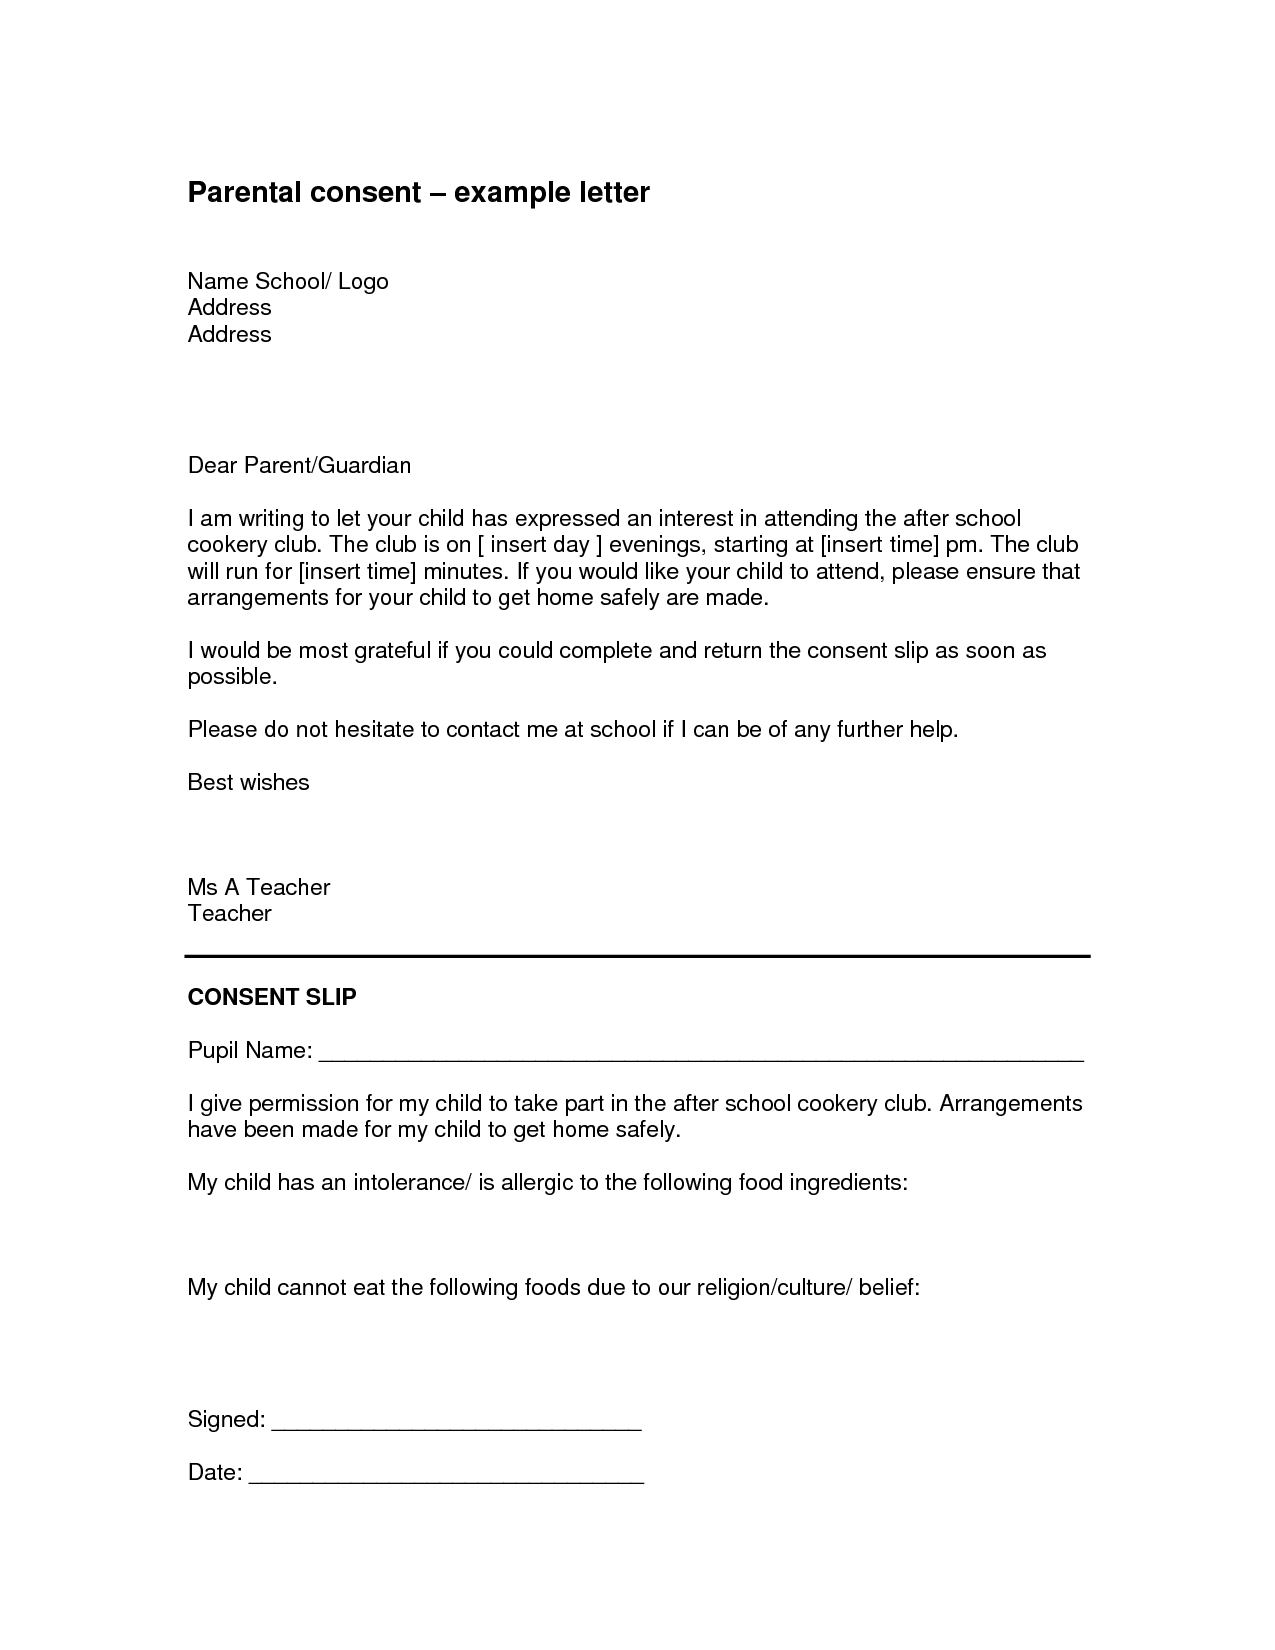 Travel Consent Letter Template Samples